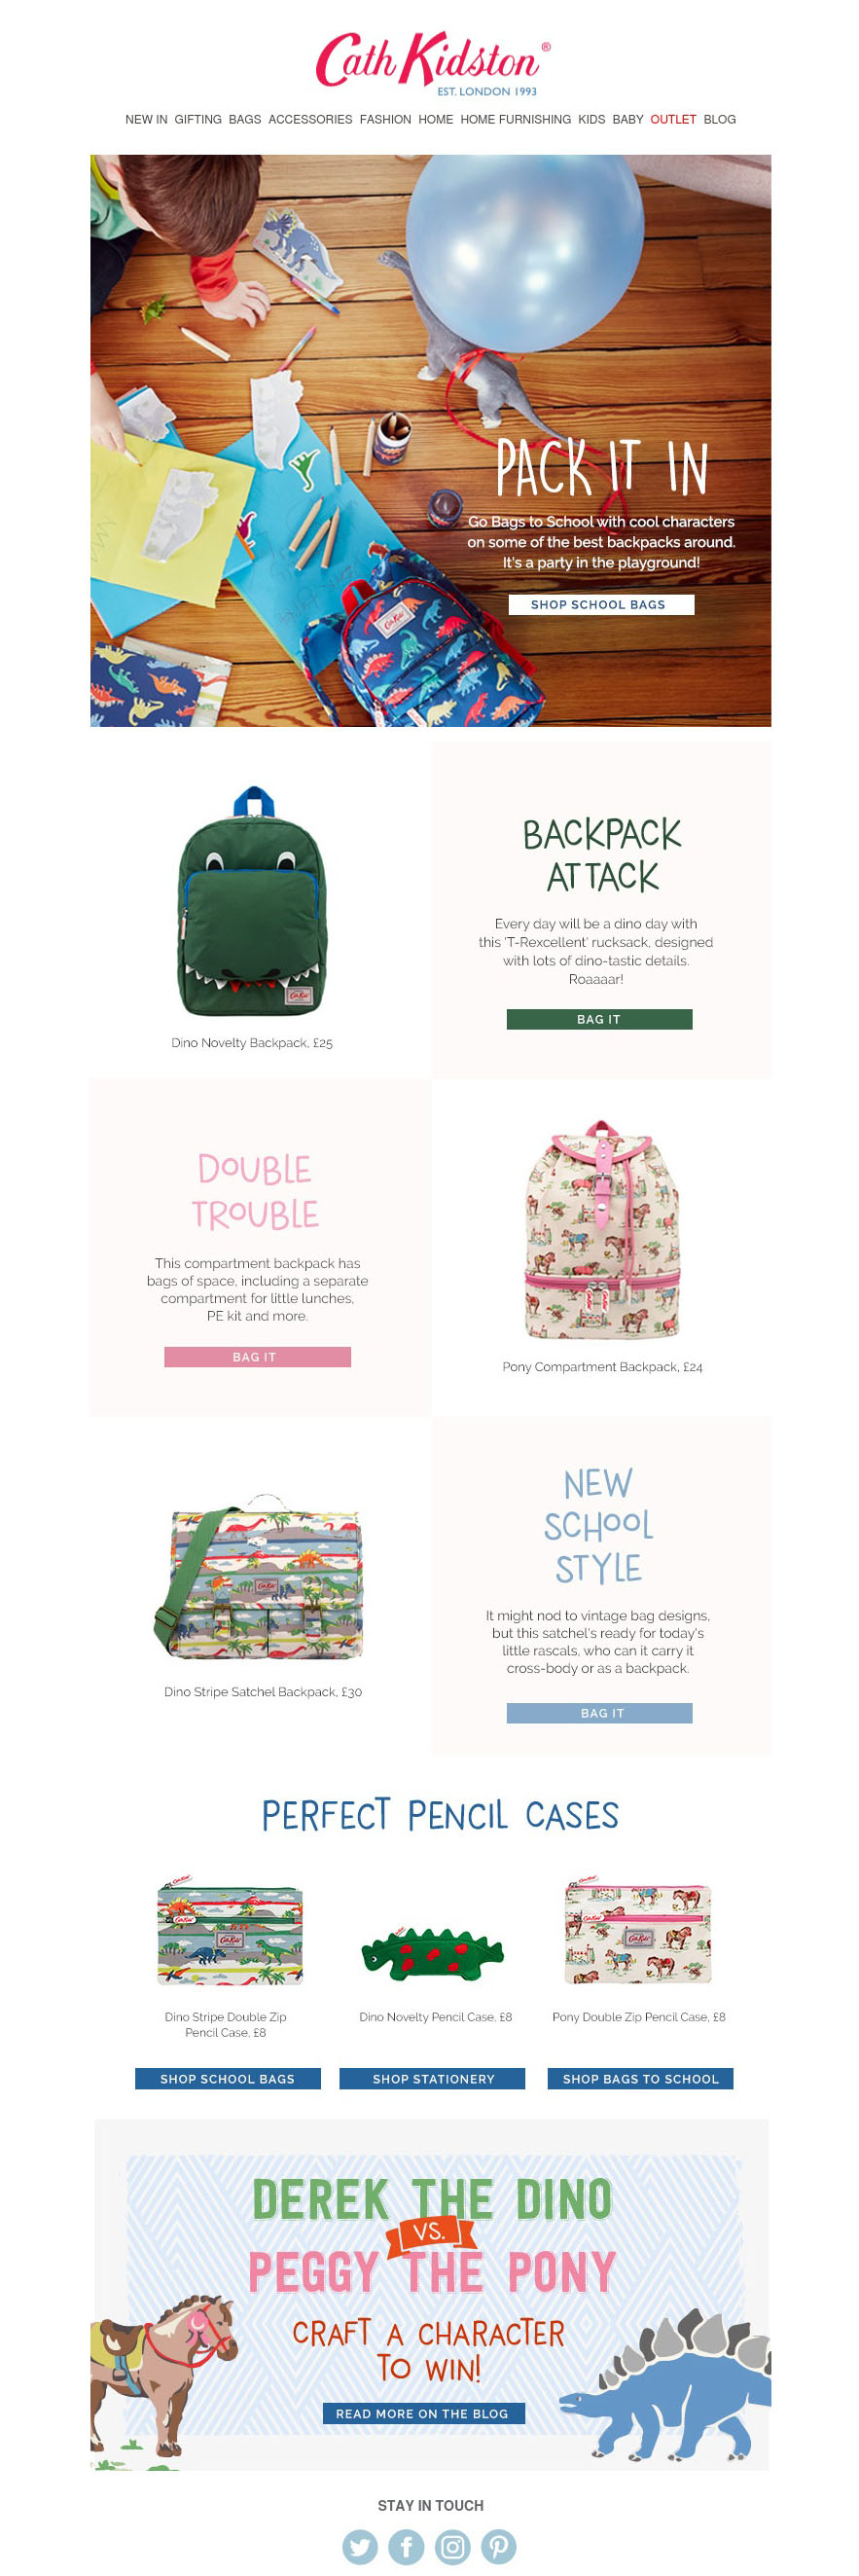 cath-kidston-back-to-school-newsletter